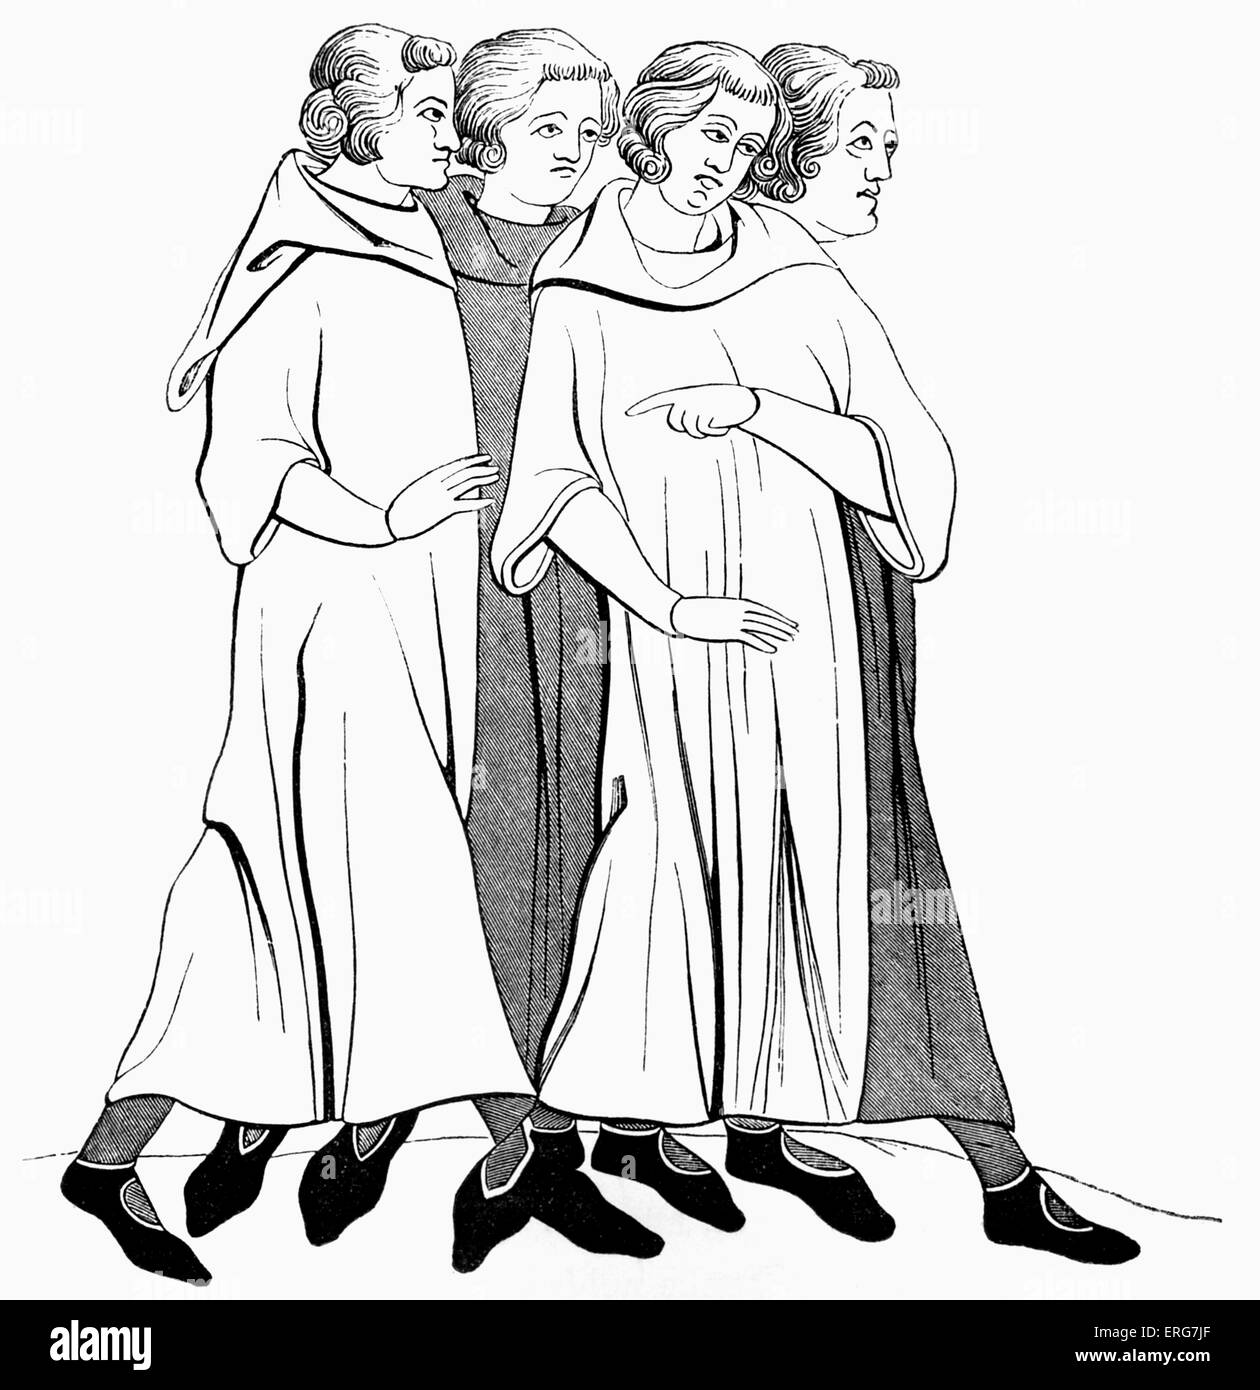 13th century cut out stock images pictures alamy Sixth Century bourgeois at the end of 13th century stock image